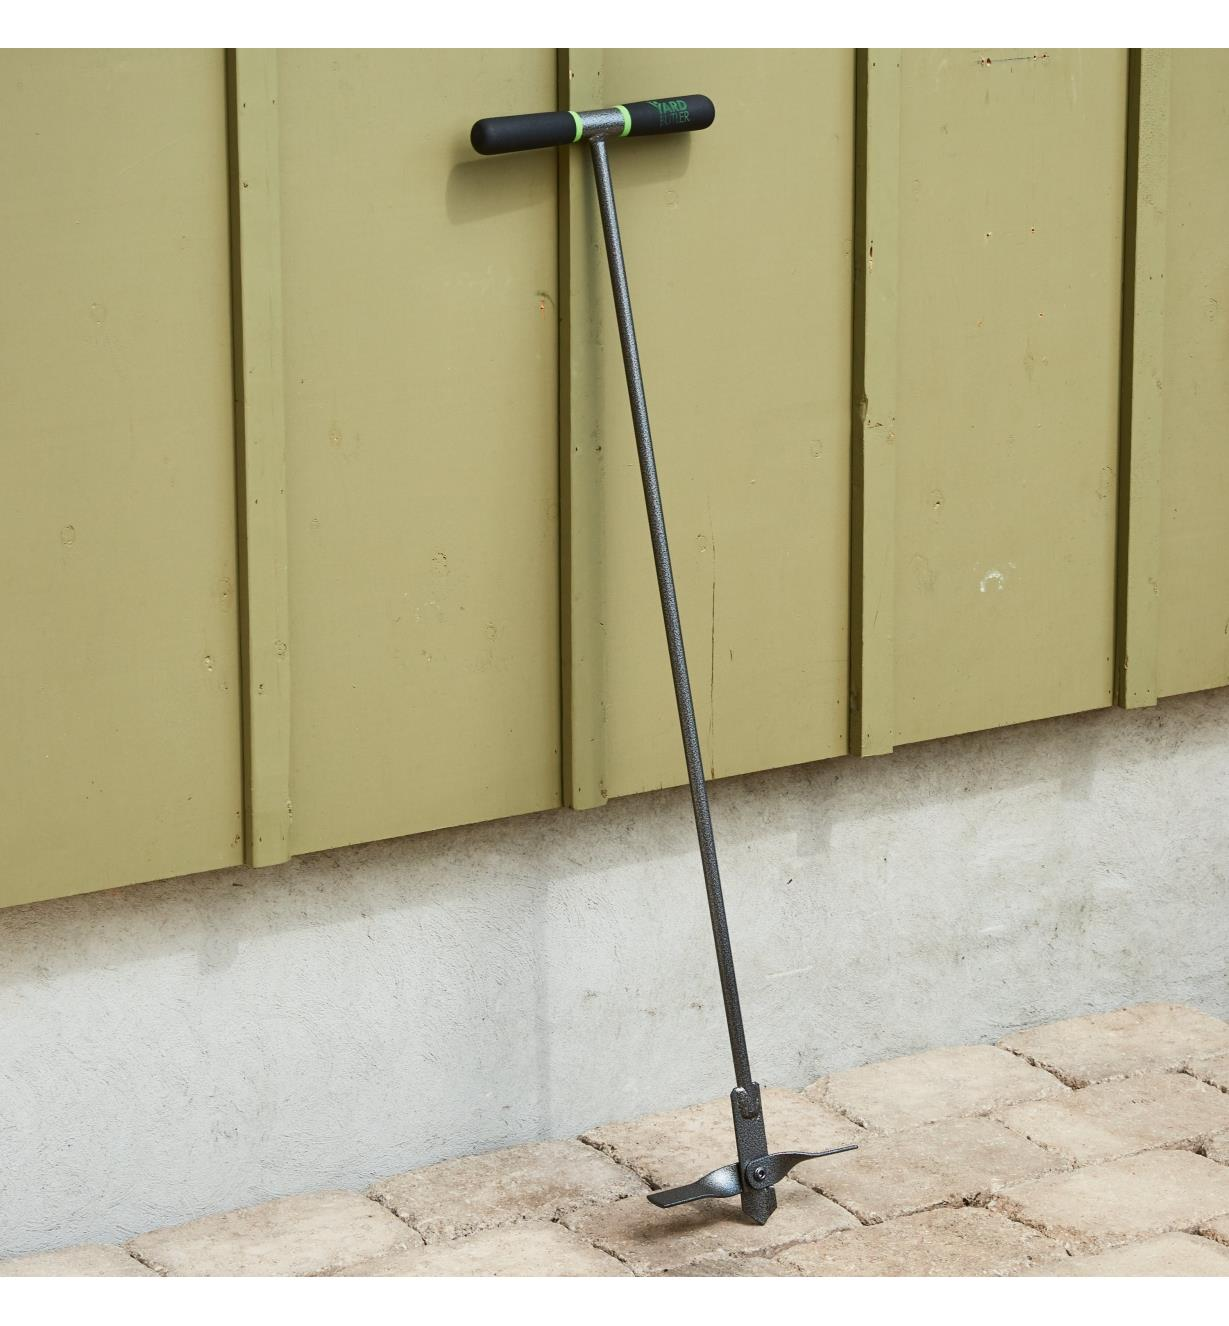 A compost aerating tool leaning against a wall